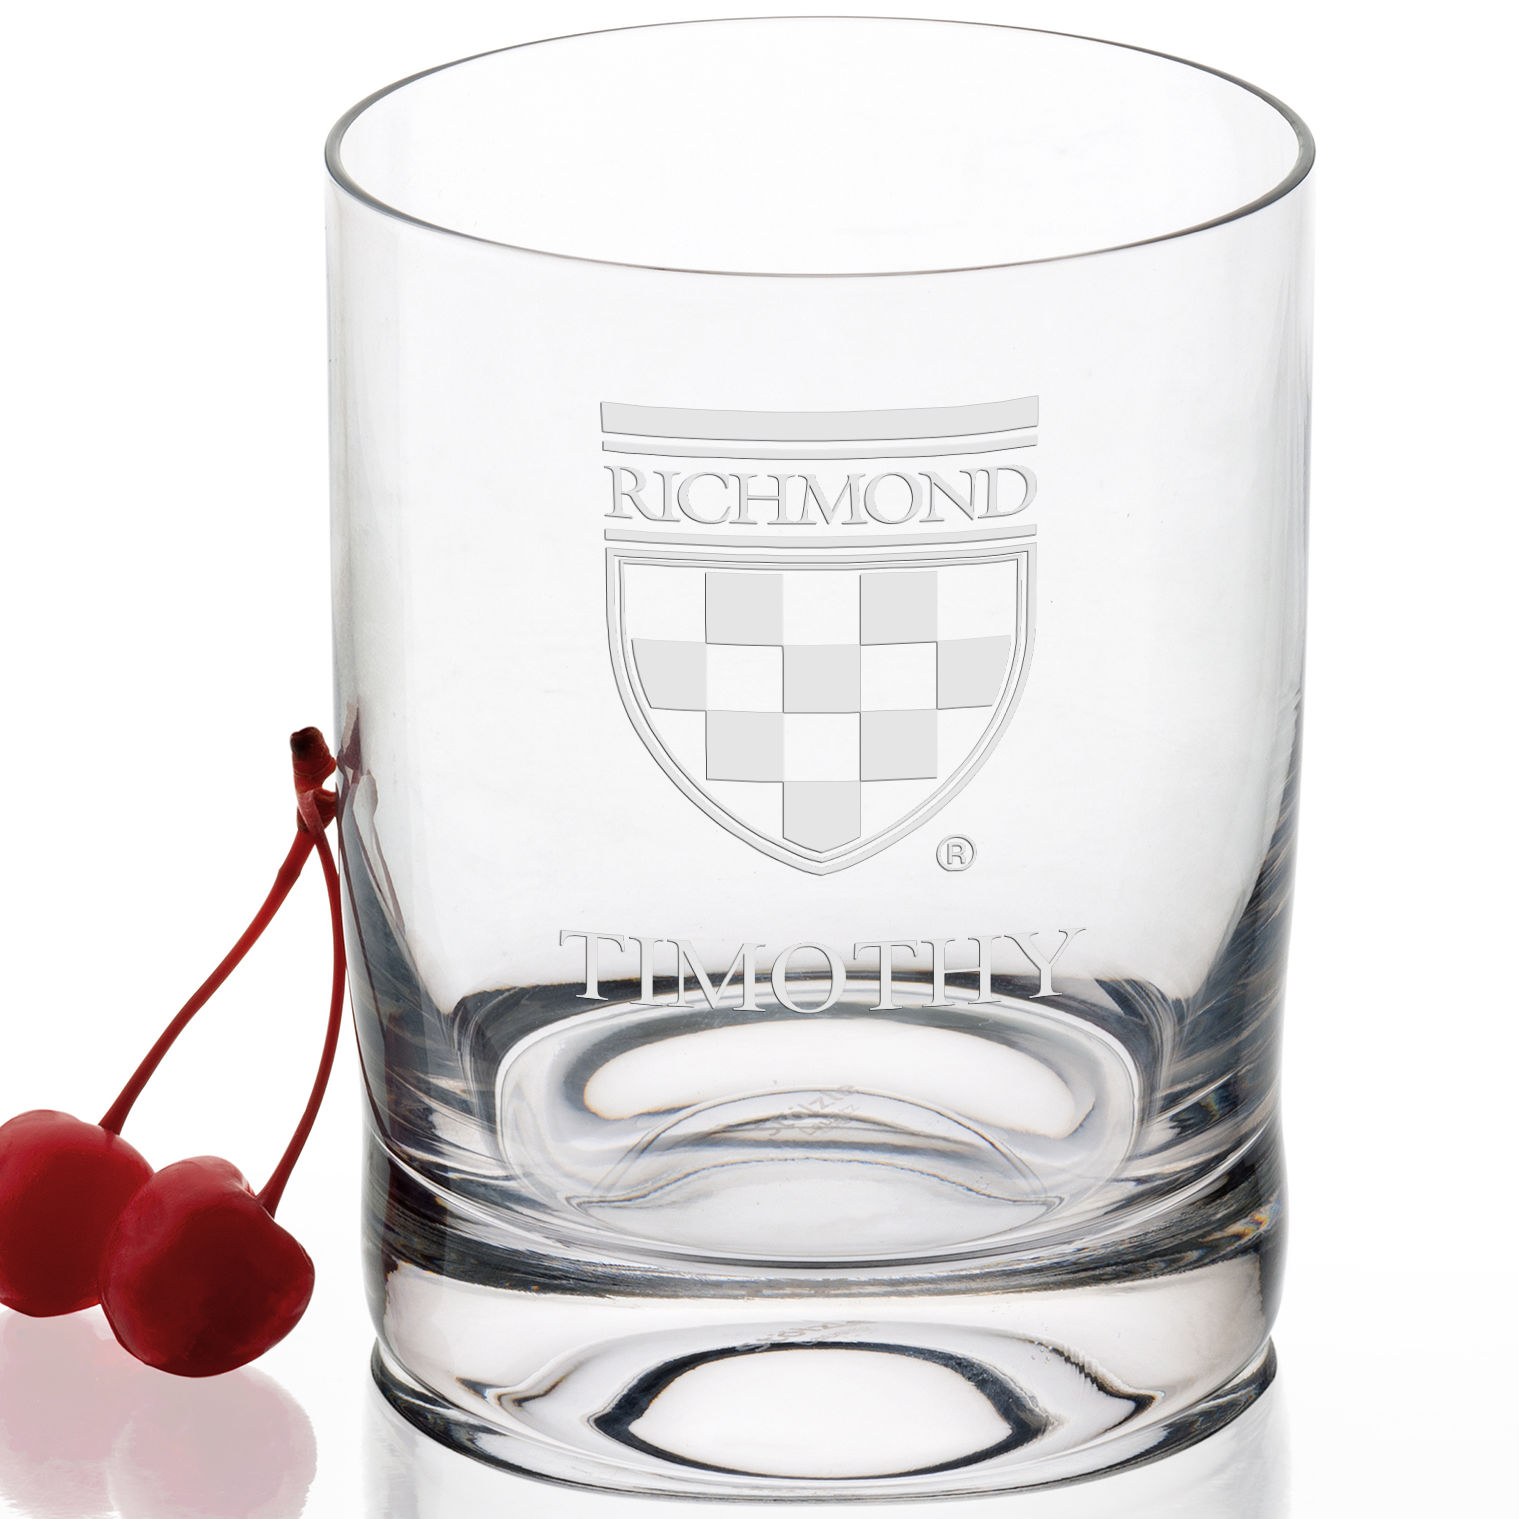 University of Richmond Tumbler Glasses - Set of 4 - Image 2